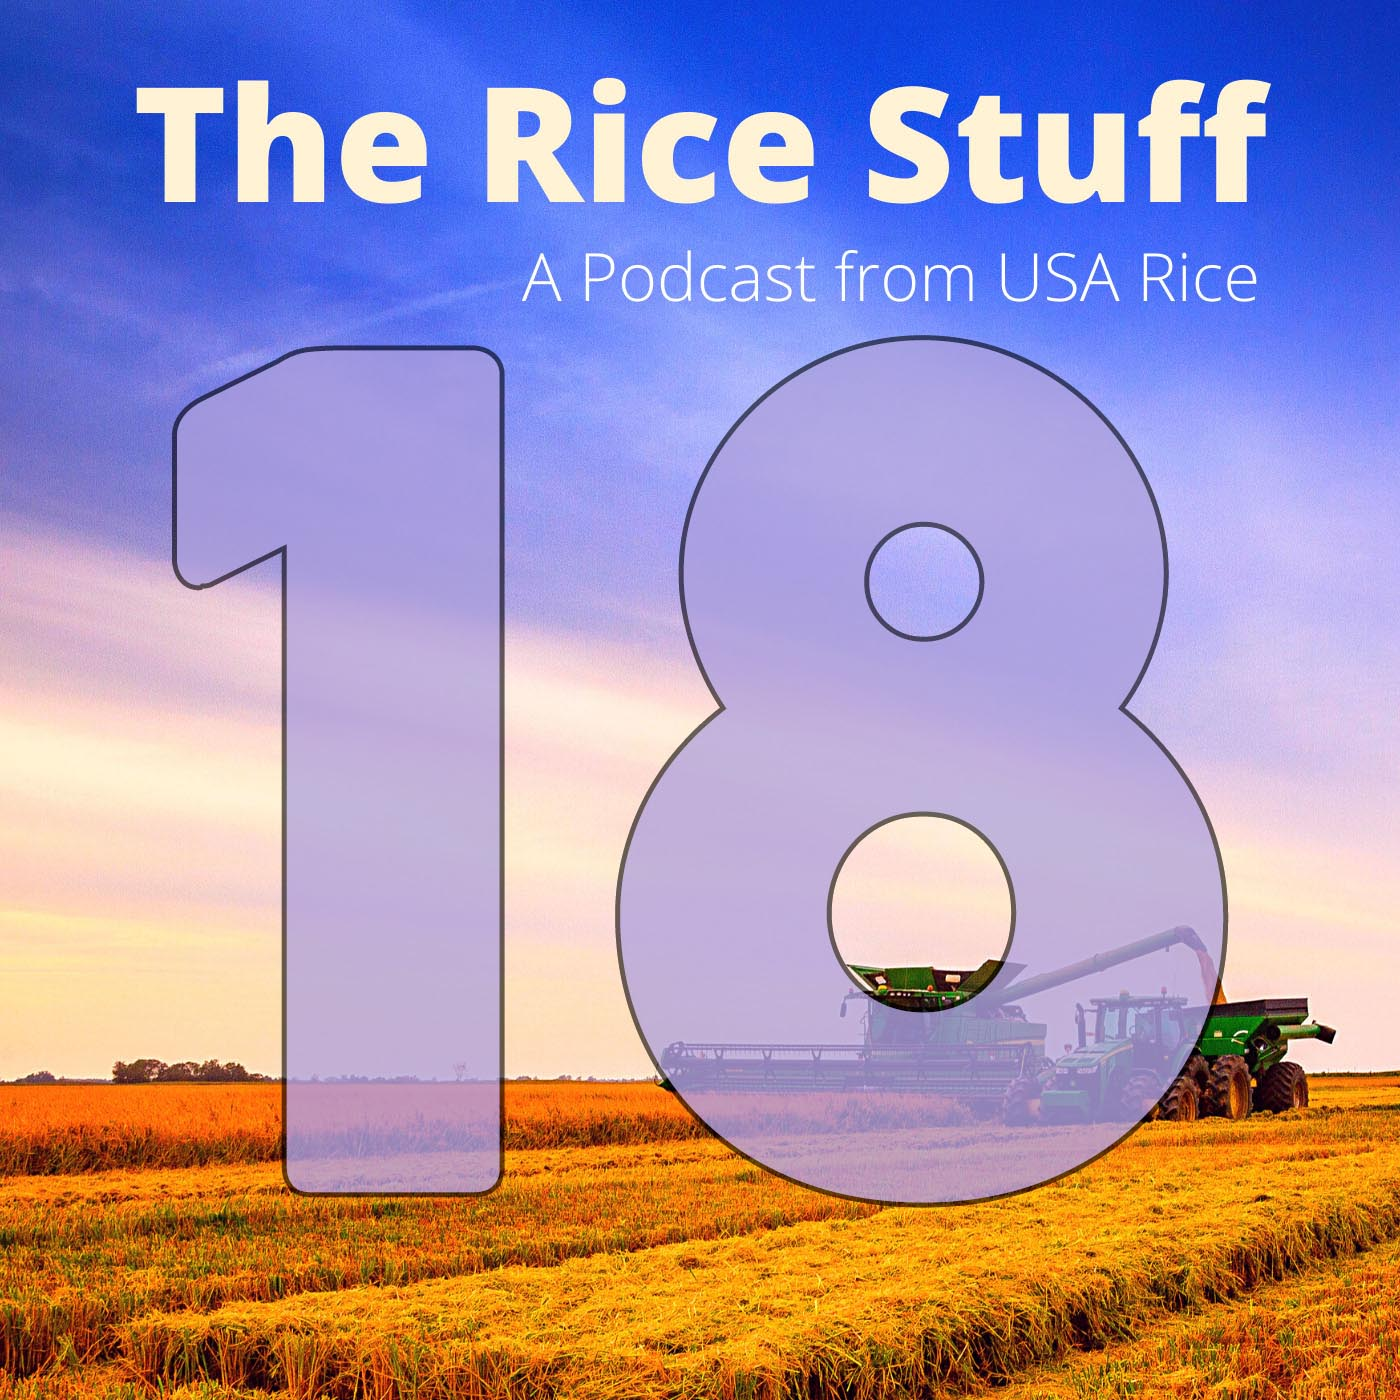 Number 18 superimposed over photo of combine and grain cart in mature rice field